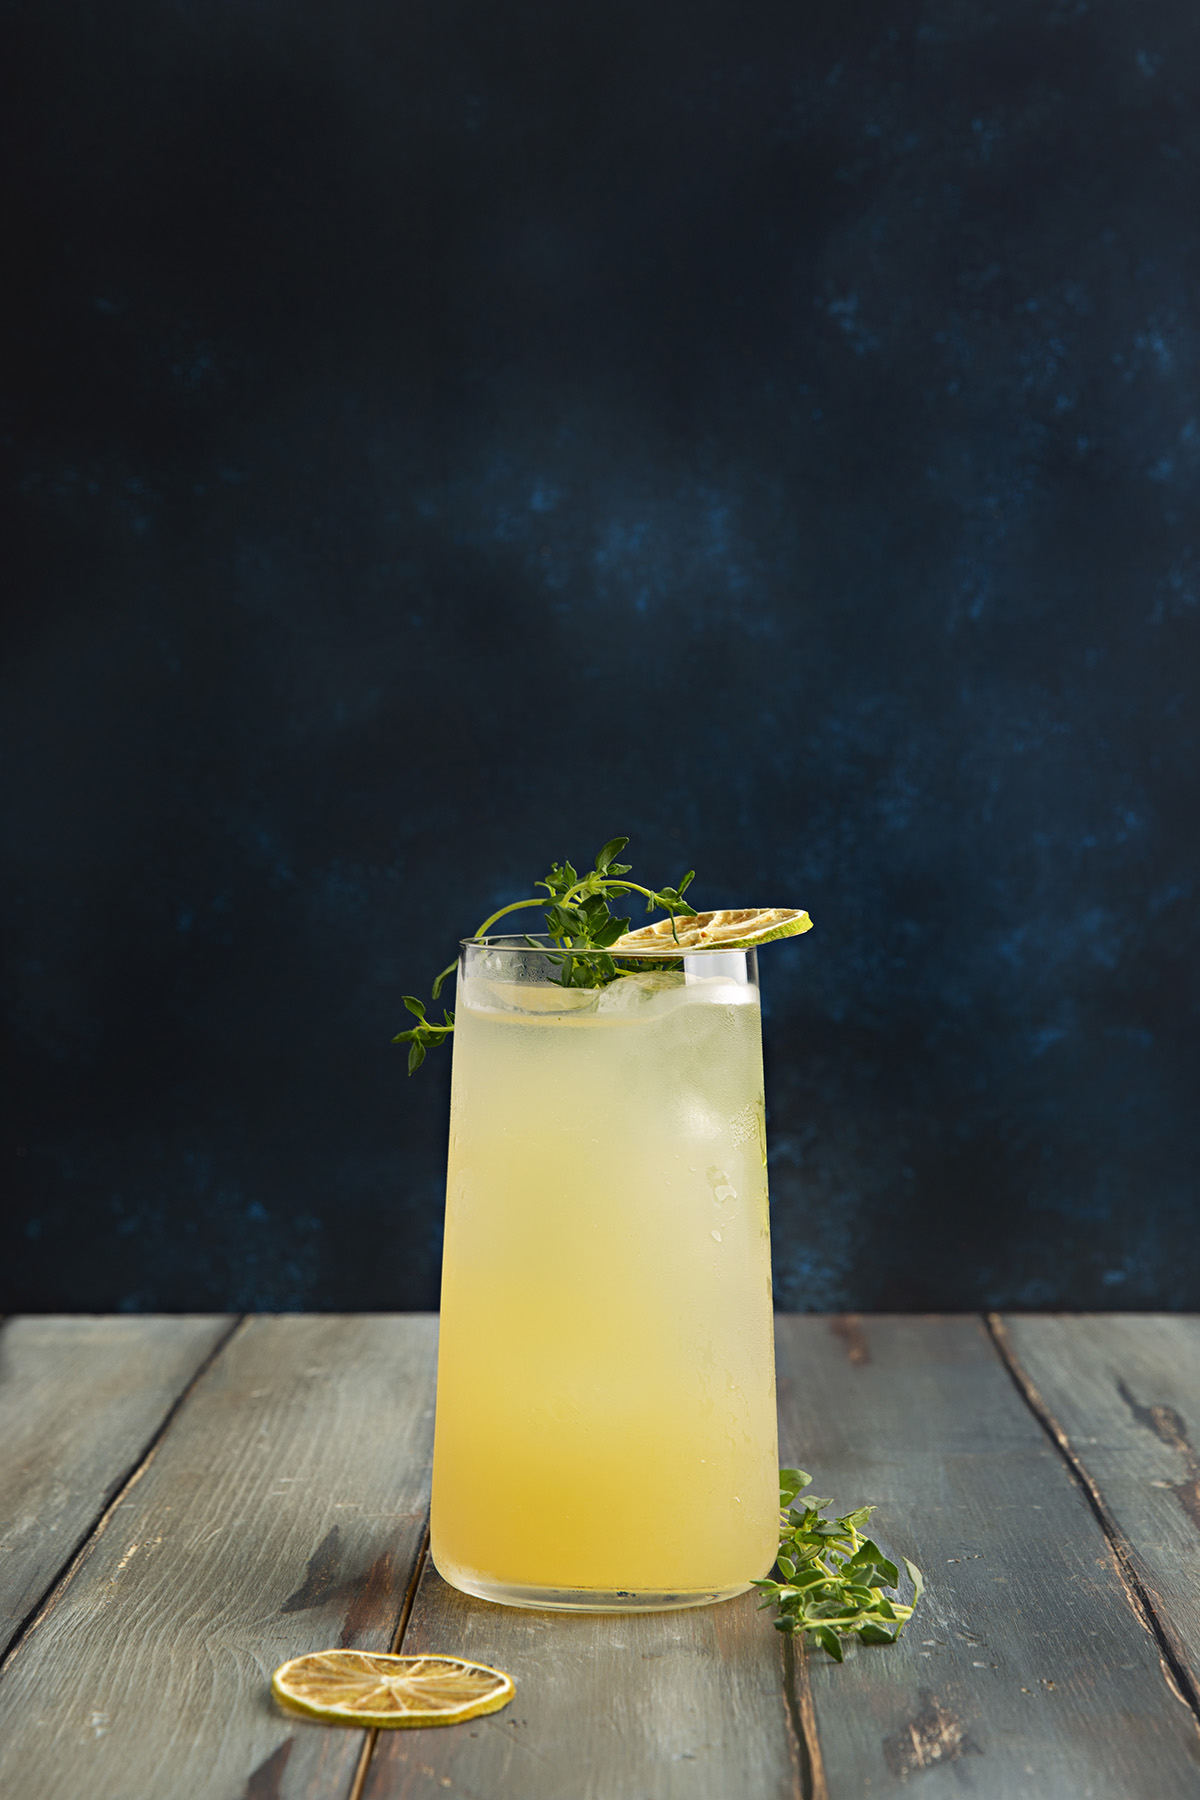 Summer 2019 Special Cocktail - Eau du Sud by Oscar Quagliarini